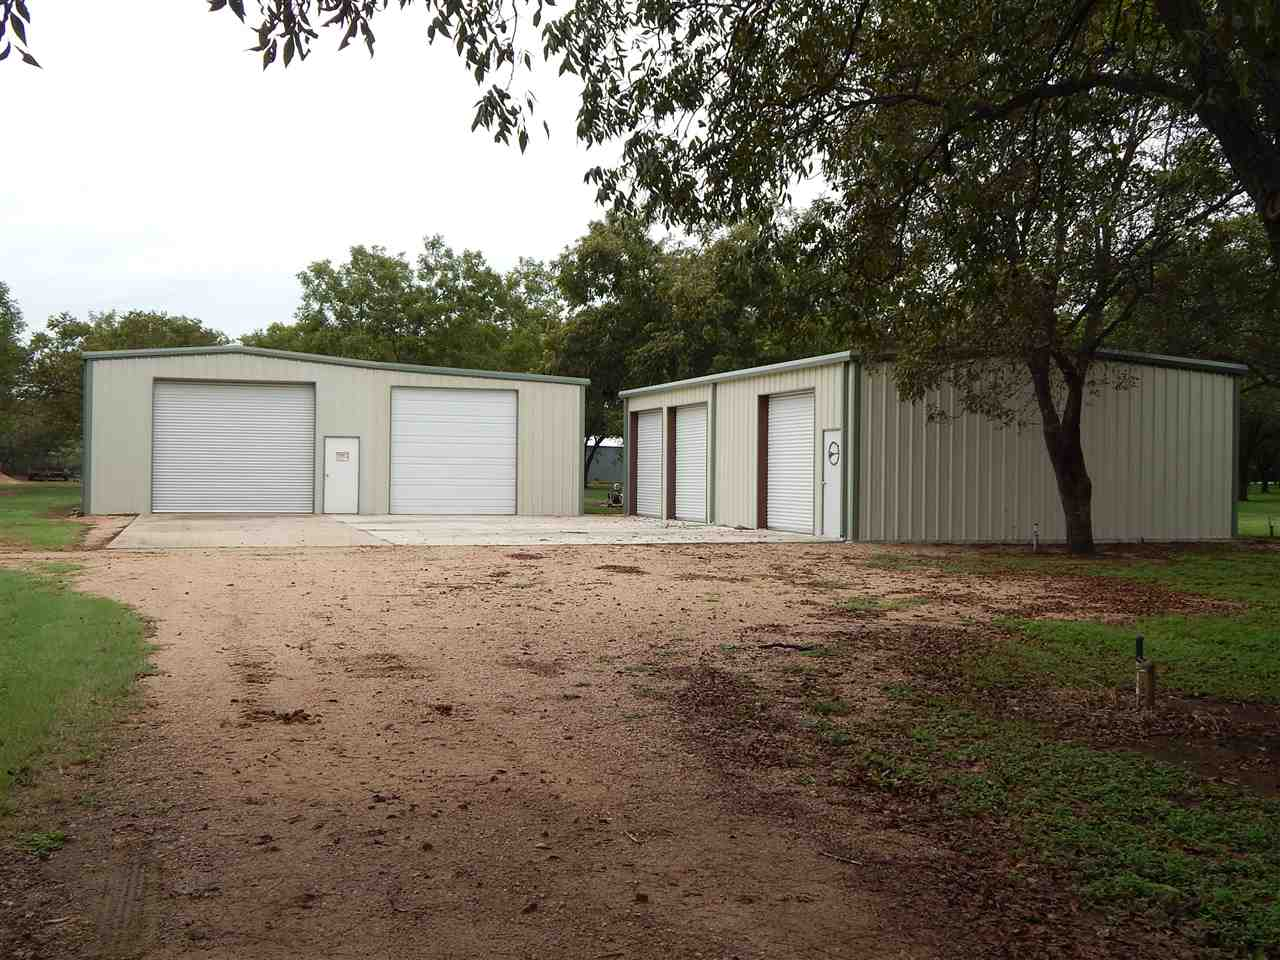 Additional photo for property listing at 3690 FM 1980 3690 FM 1980 Marble Falls, Texas 78654 United States